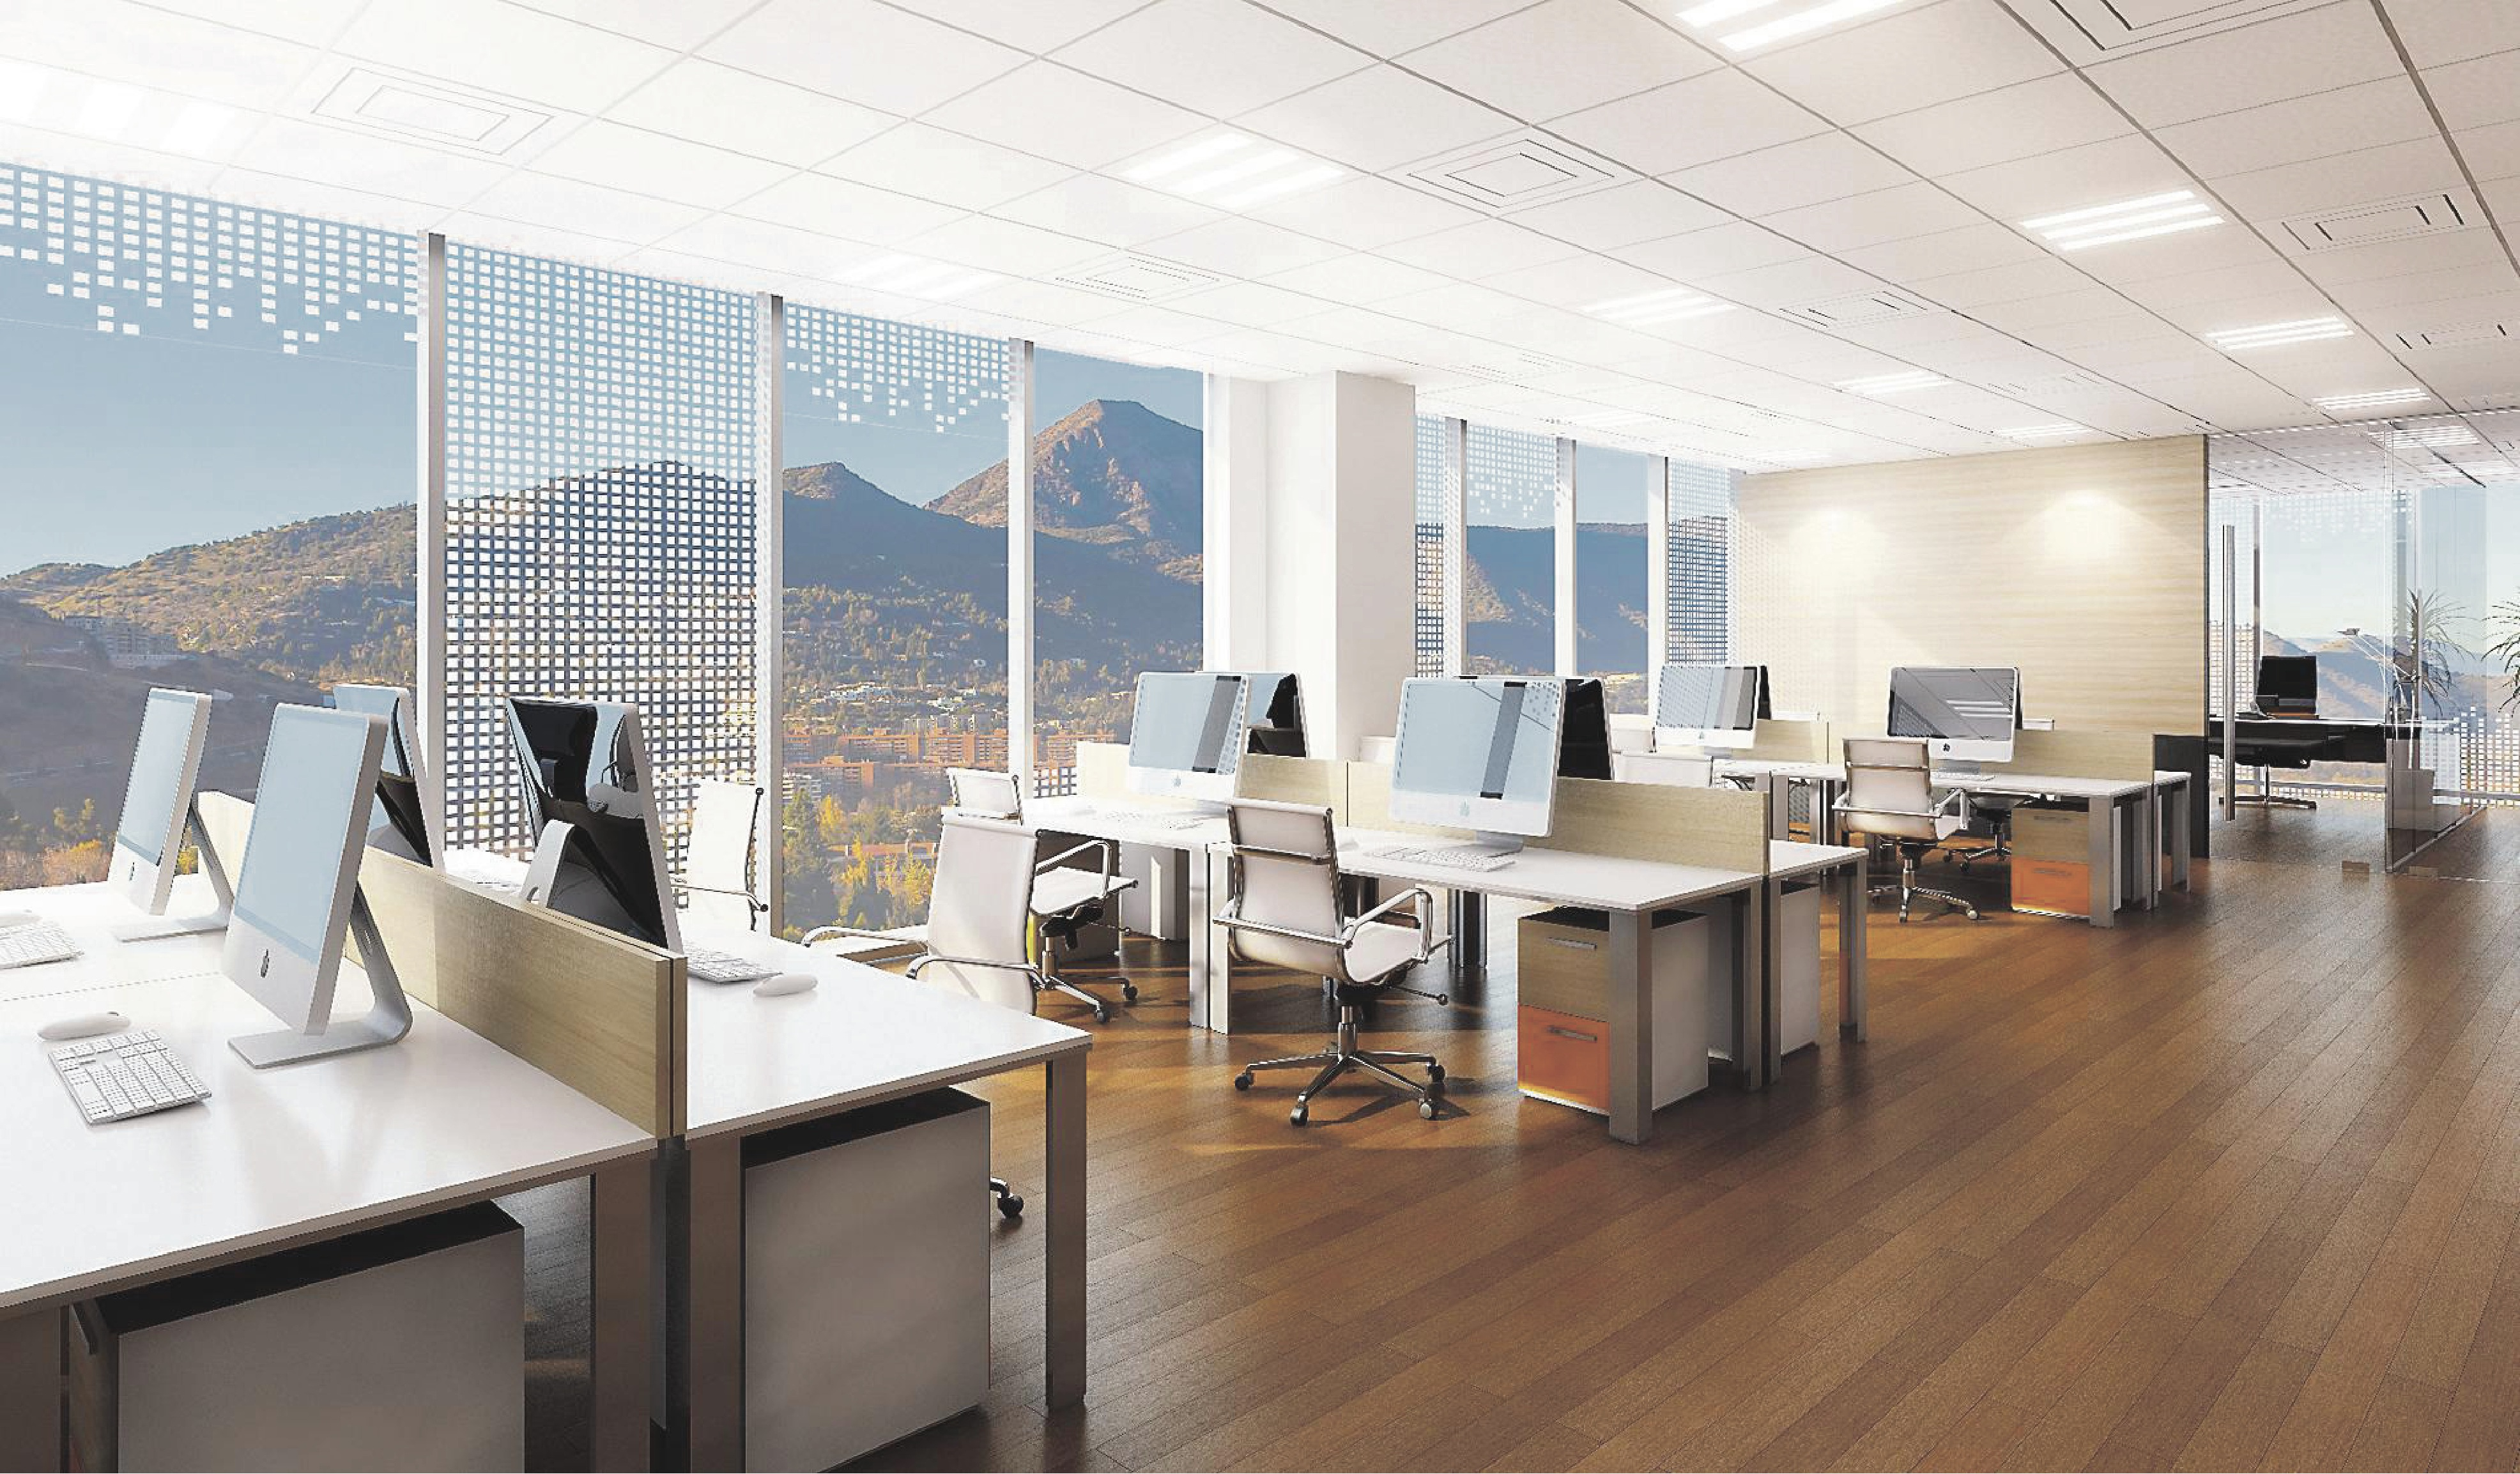 Blog manzano limpiezas s l for Oficinas correo madrid